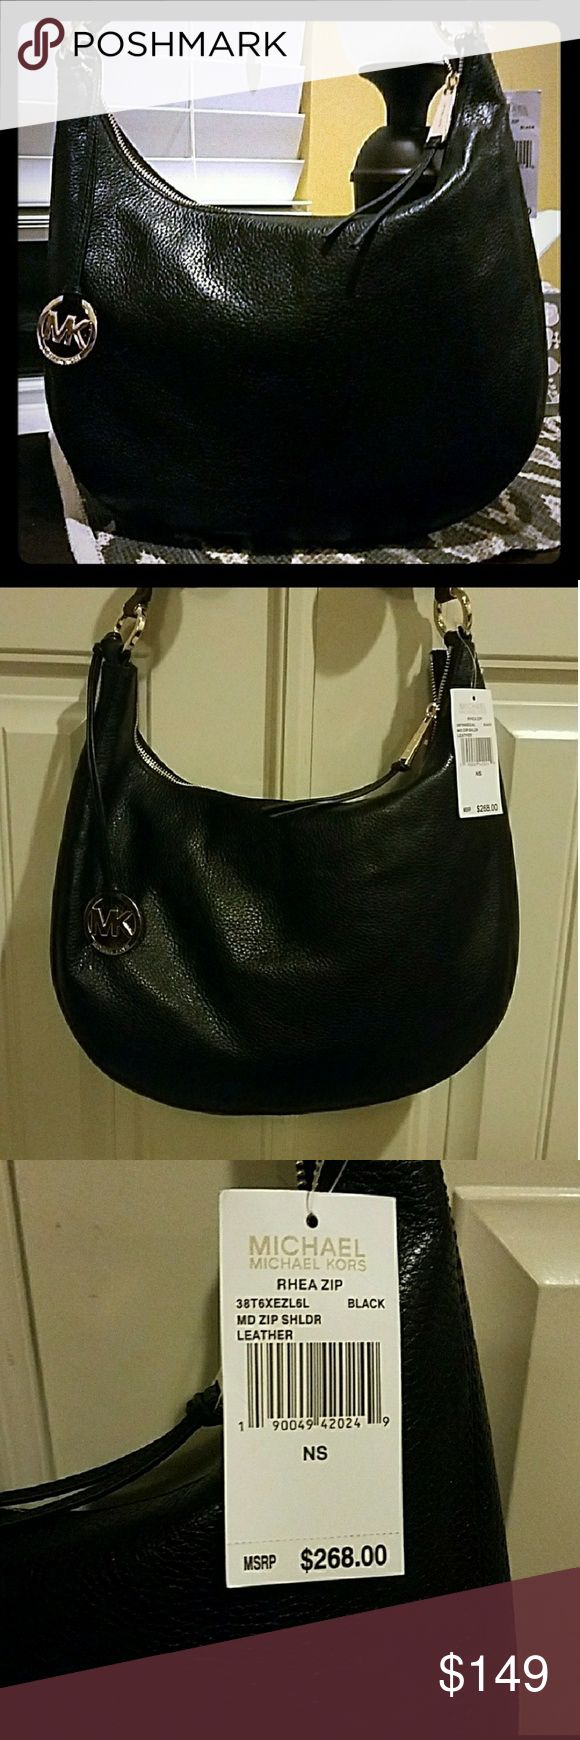 """🎉💕Nwt Beautiful MK purse💕🎉 Beautiful pebbled leather medium size MK shoulder purse with MK chain. Authentic tags from store. Very chic. Perfect Christmas present! 13 1/2"""" w x 9 1/2 l  Final ⬇ Michael Kors Bags Shoulder Bags"""